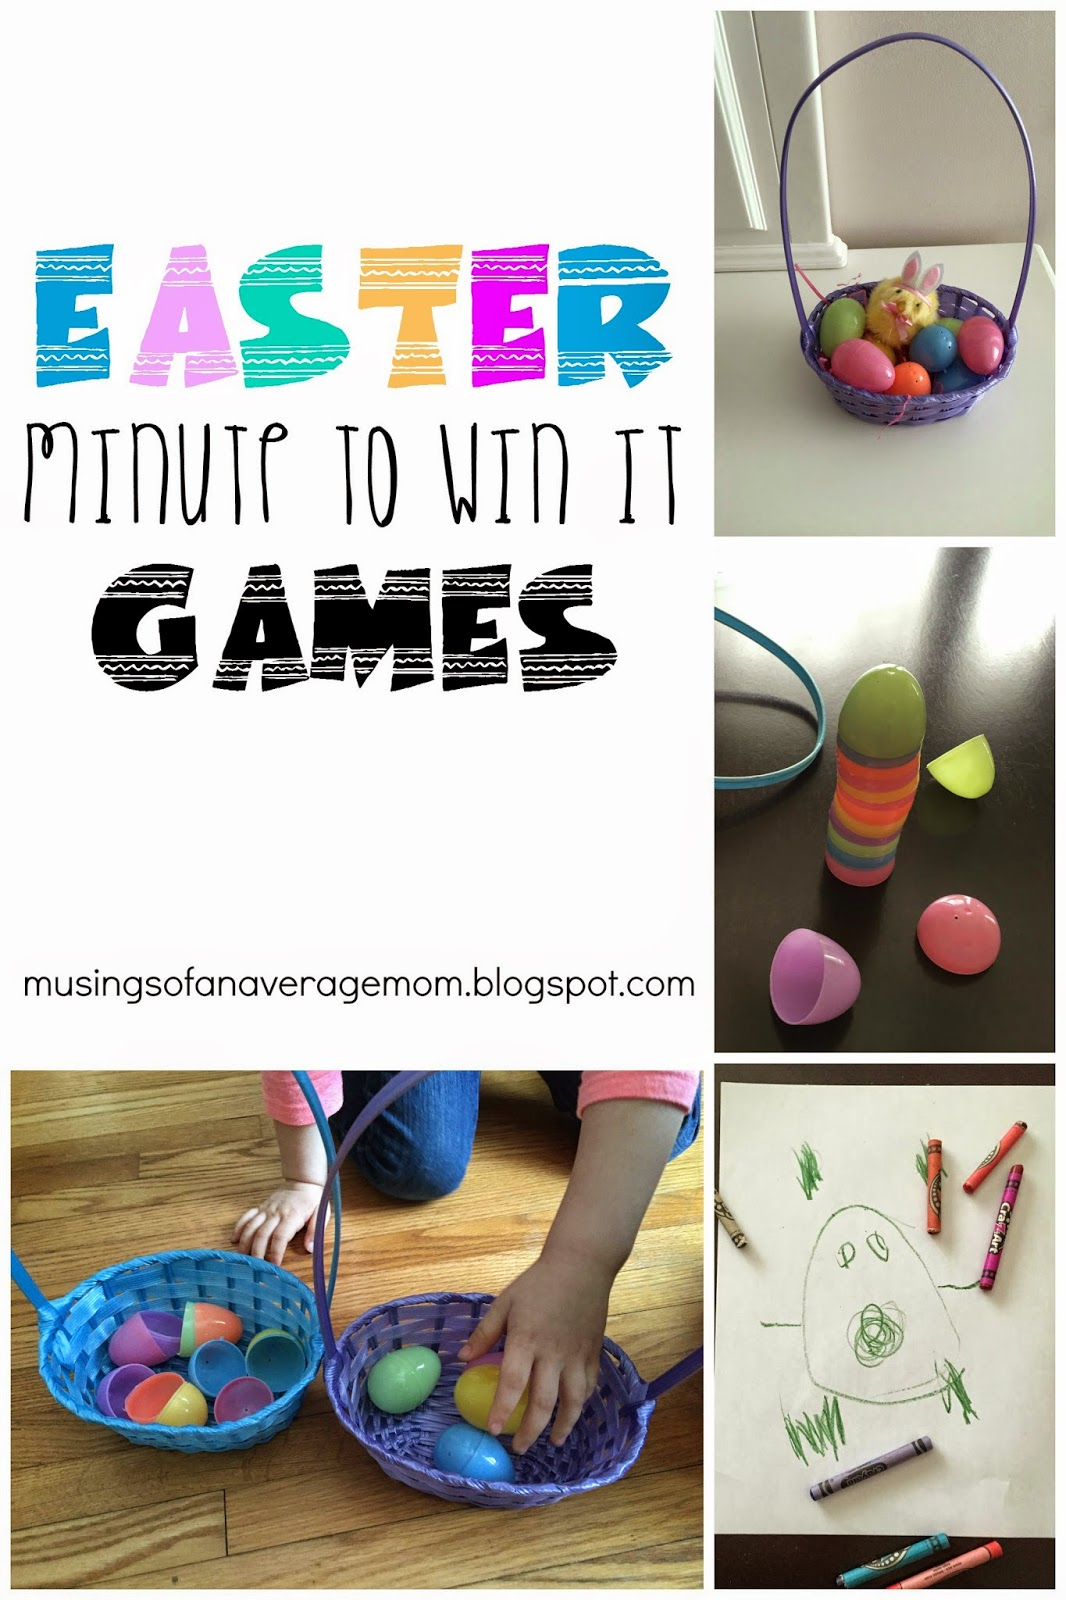 Musings of an Average Mom: March 2015